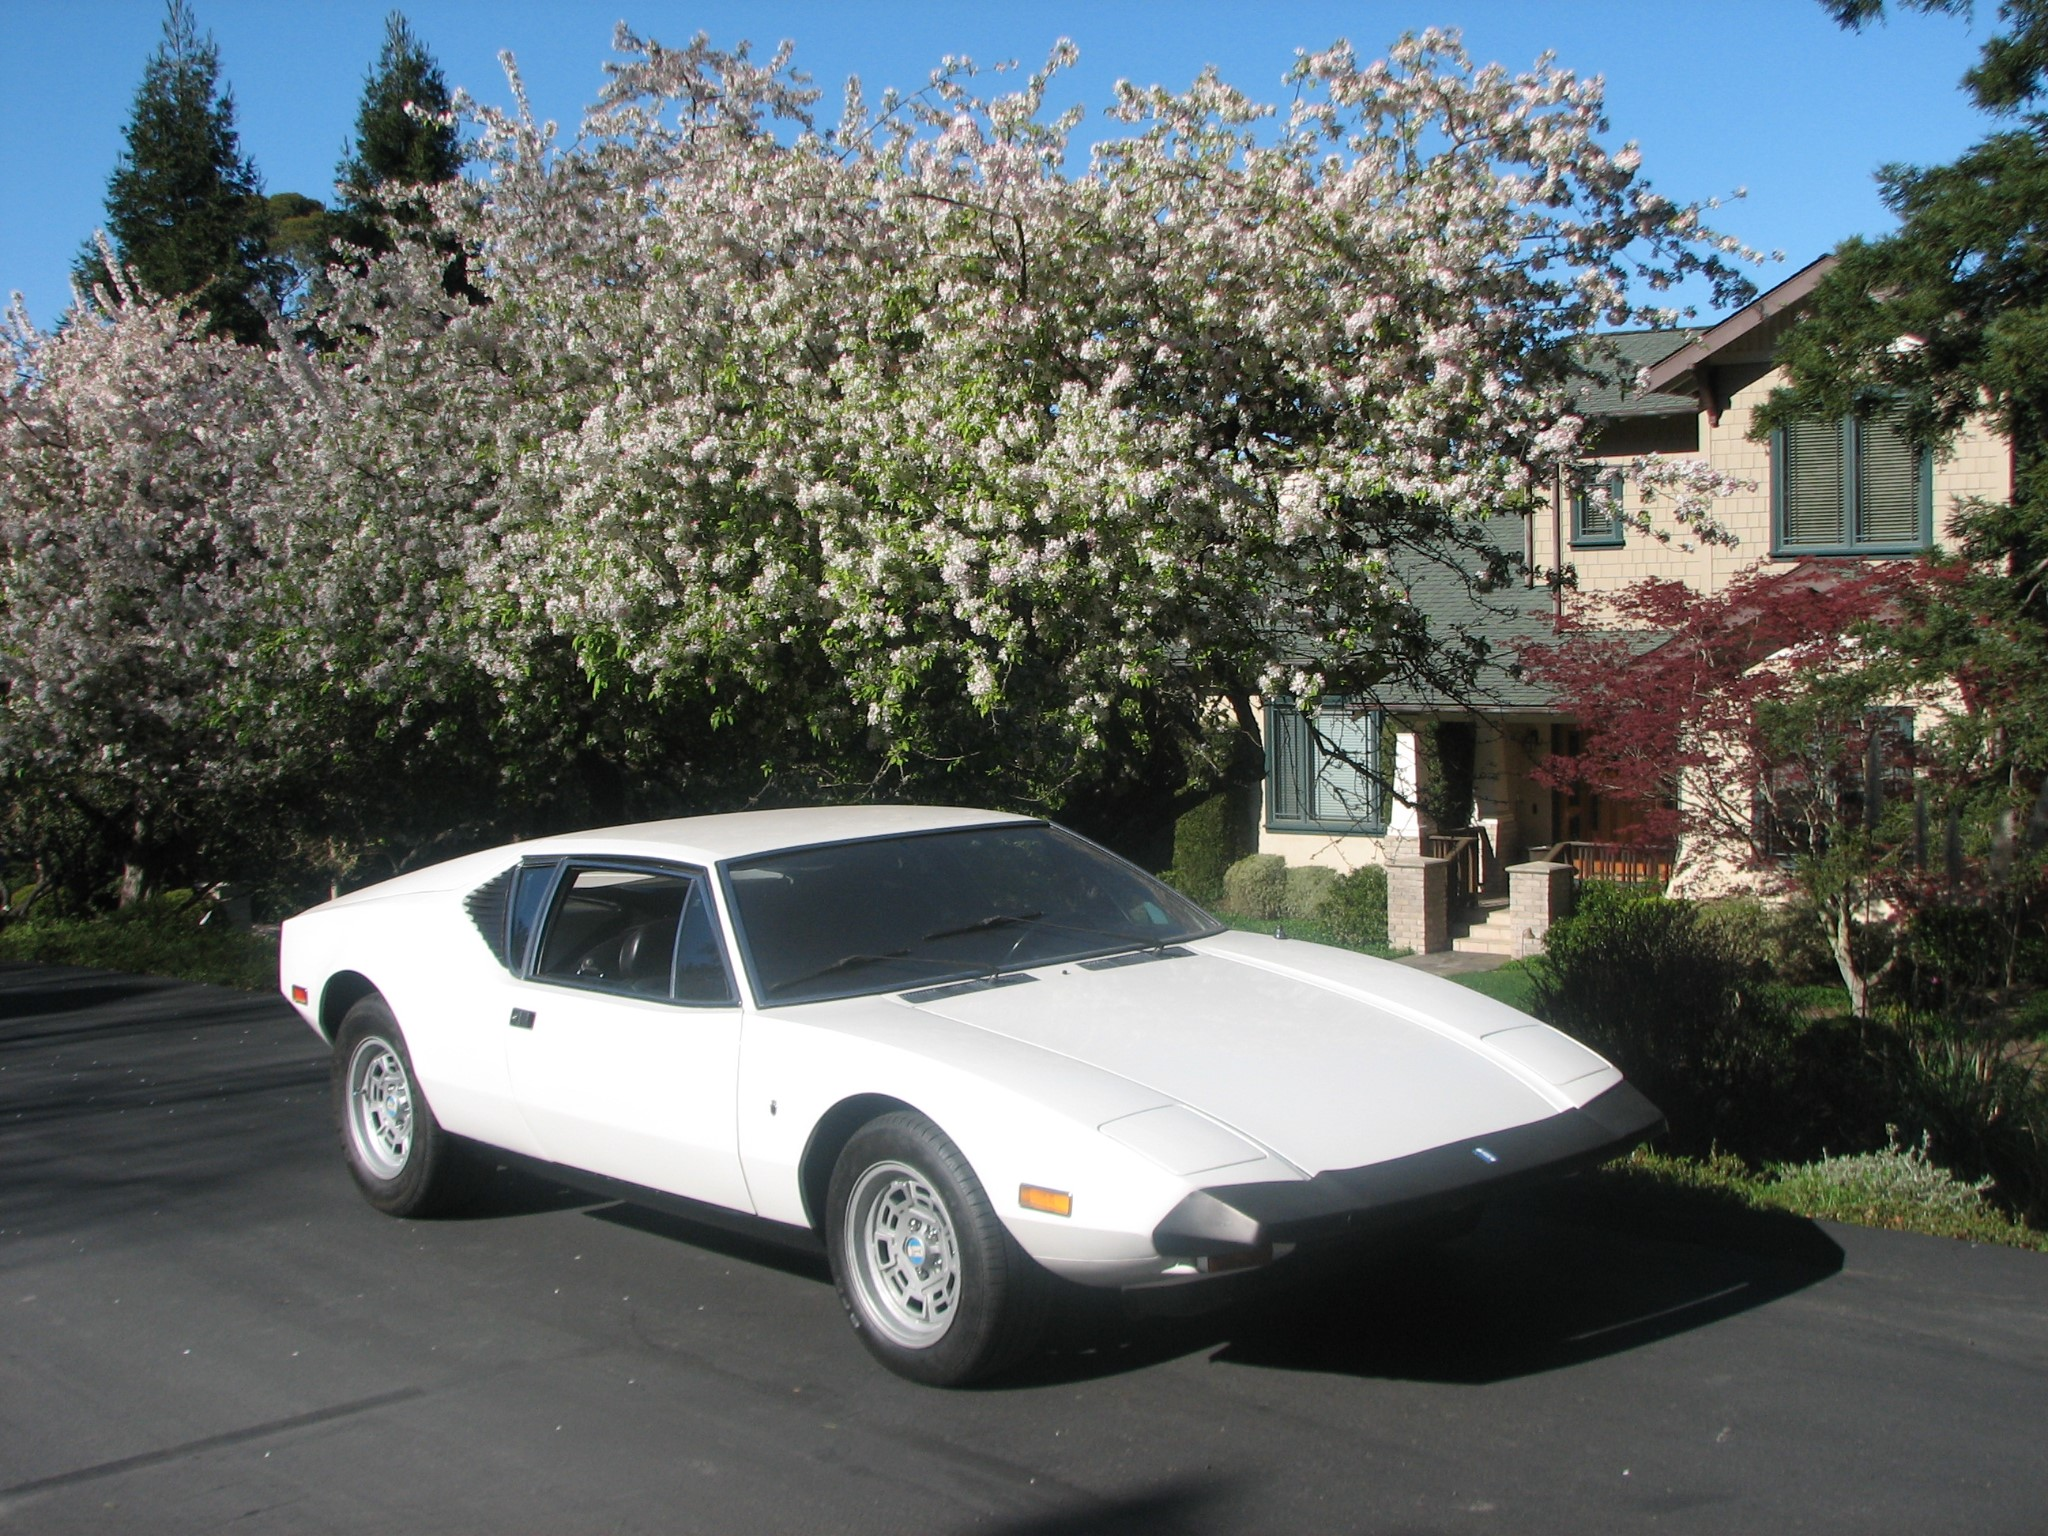 This 1973 De Tomaso Pantera Could Be Your Boutique Brute - The Drive